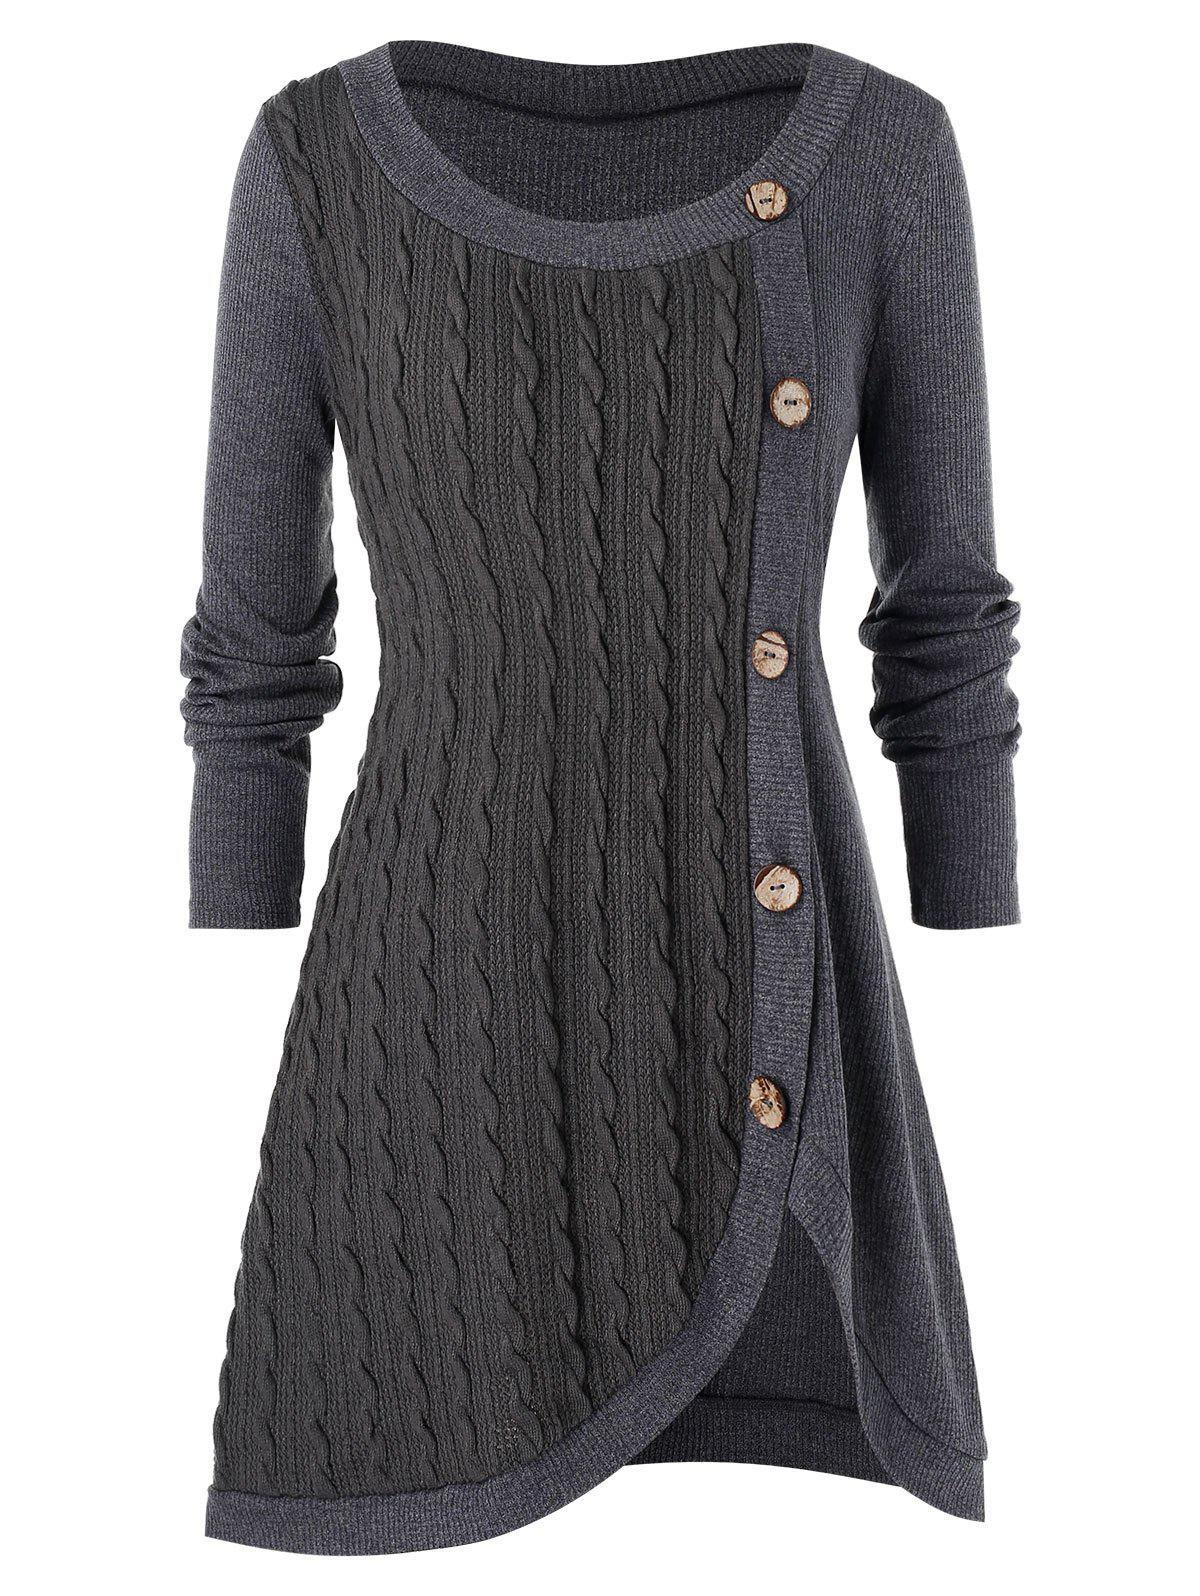 Plus Size Buttoned Front Slit Cable Knit Sweater - LIGHT SLATE GRAY 4X